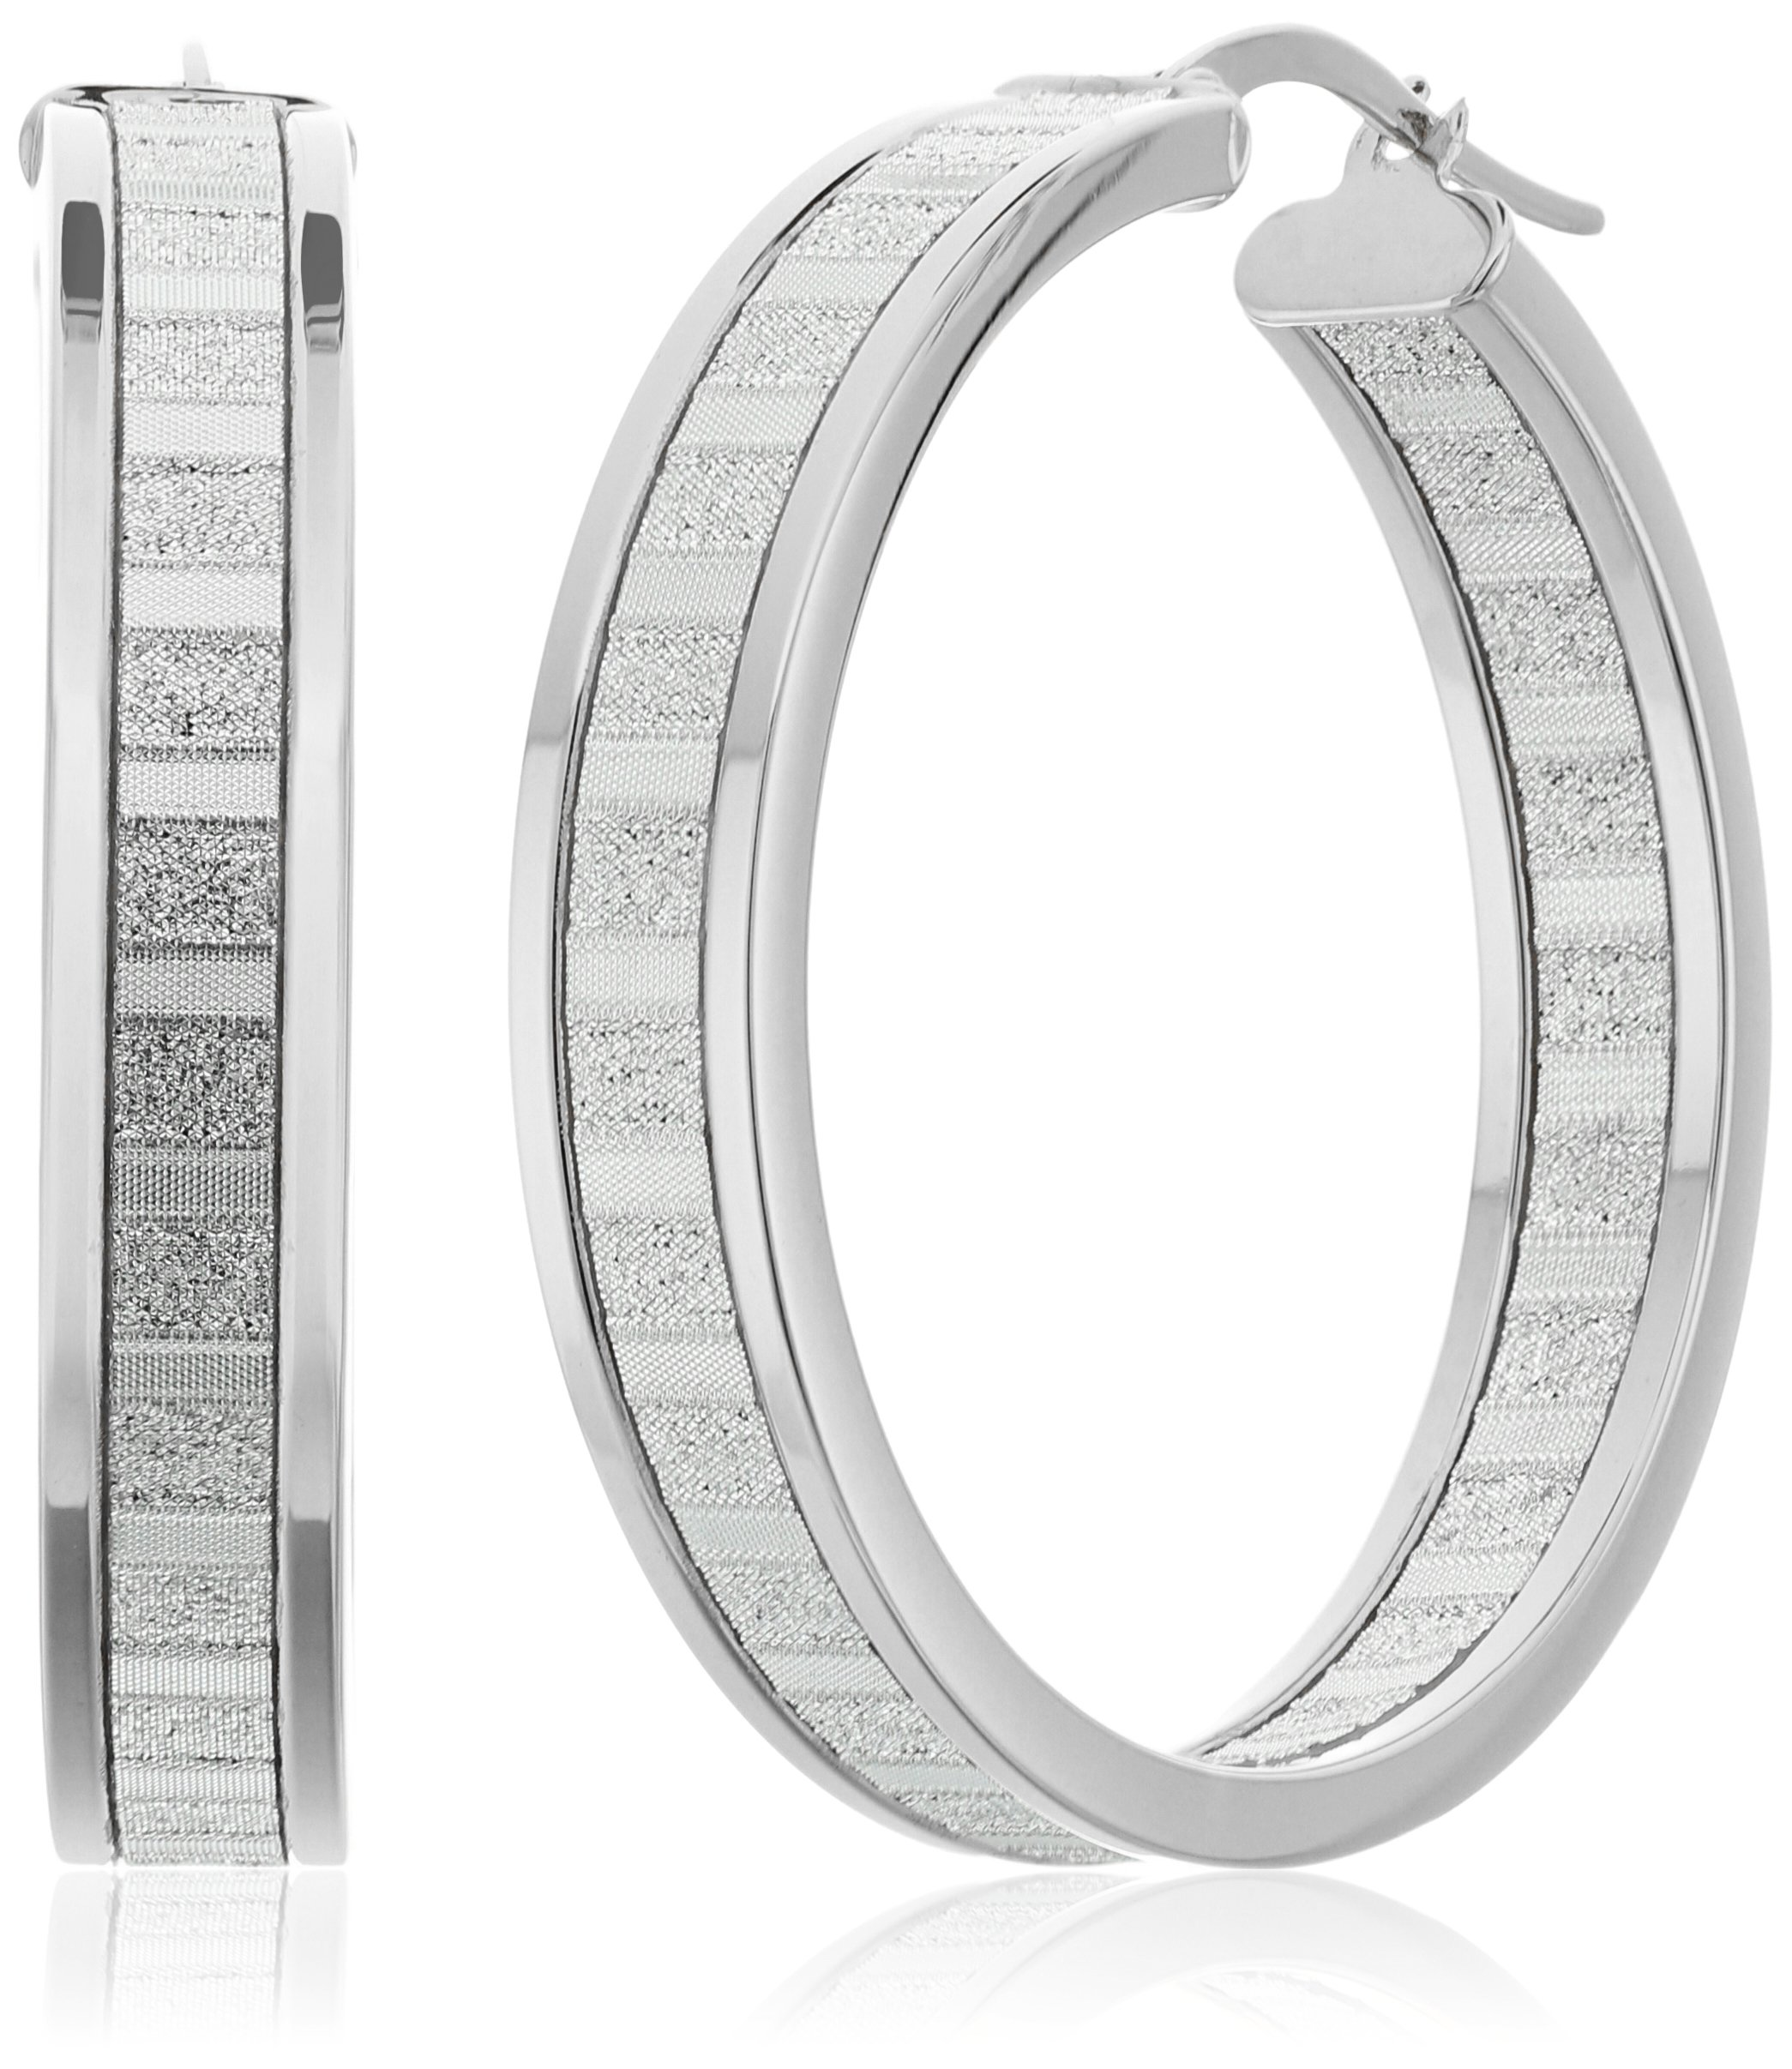 14k White Gold Italian 30 mm Wide Hoop Earrings with Baguette Style Glitter Hoop Earrings